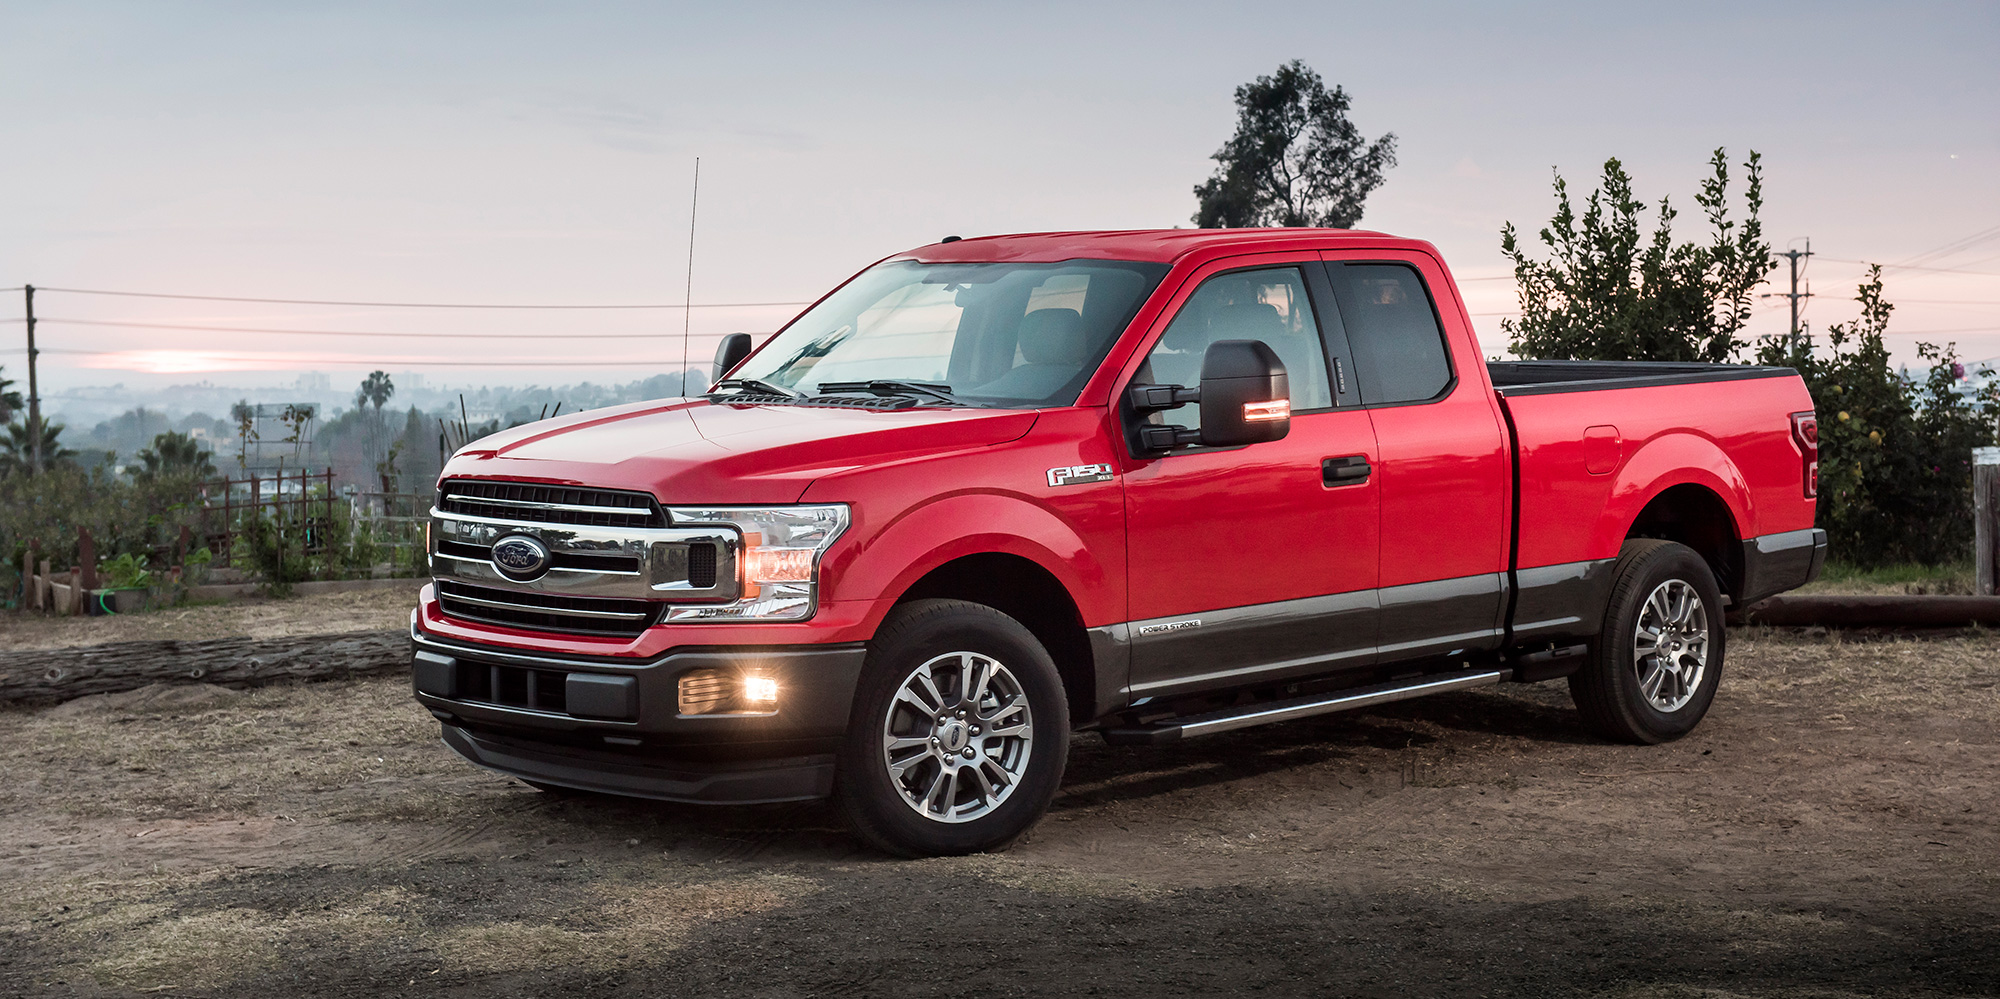 The first-ever F-150 Diesel was introduced in 2018